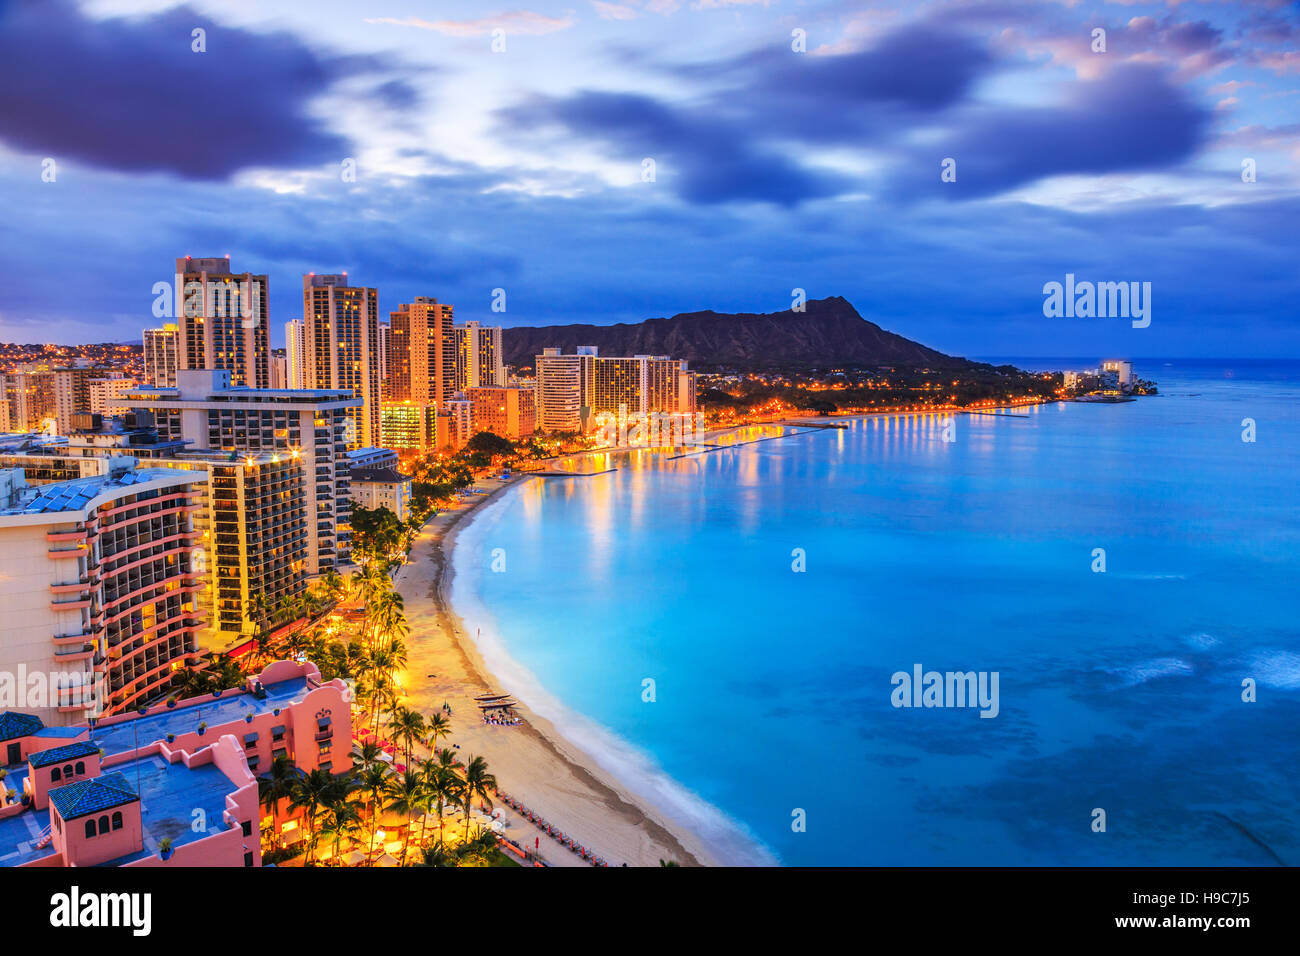 Honolulu, Hawaii. Skyline of Honolulu, Diamond Head volcano including the hotels and buildings on Waikiki Beach. - Stock Image